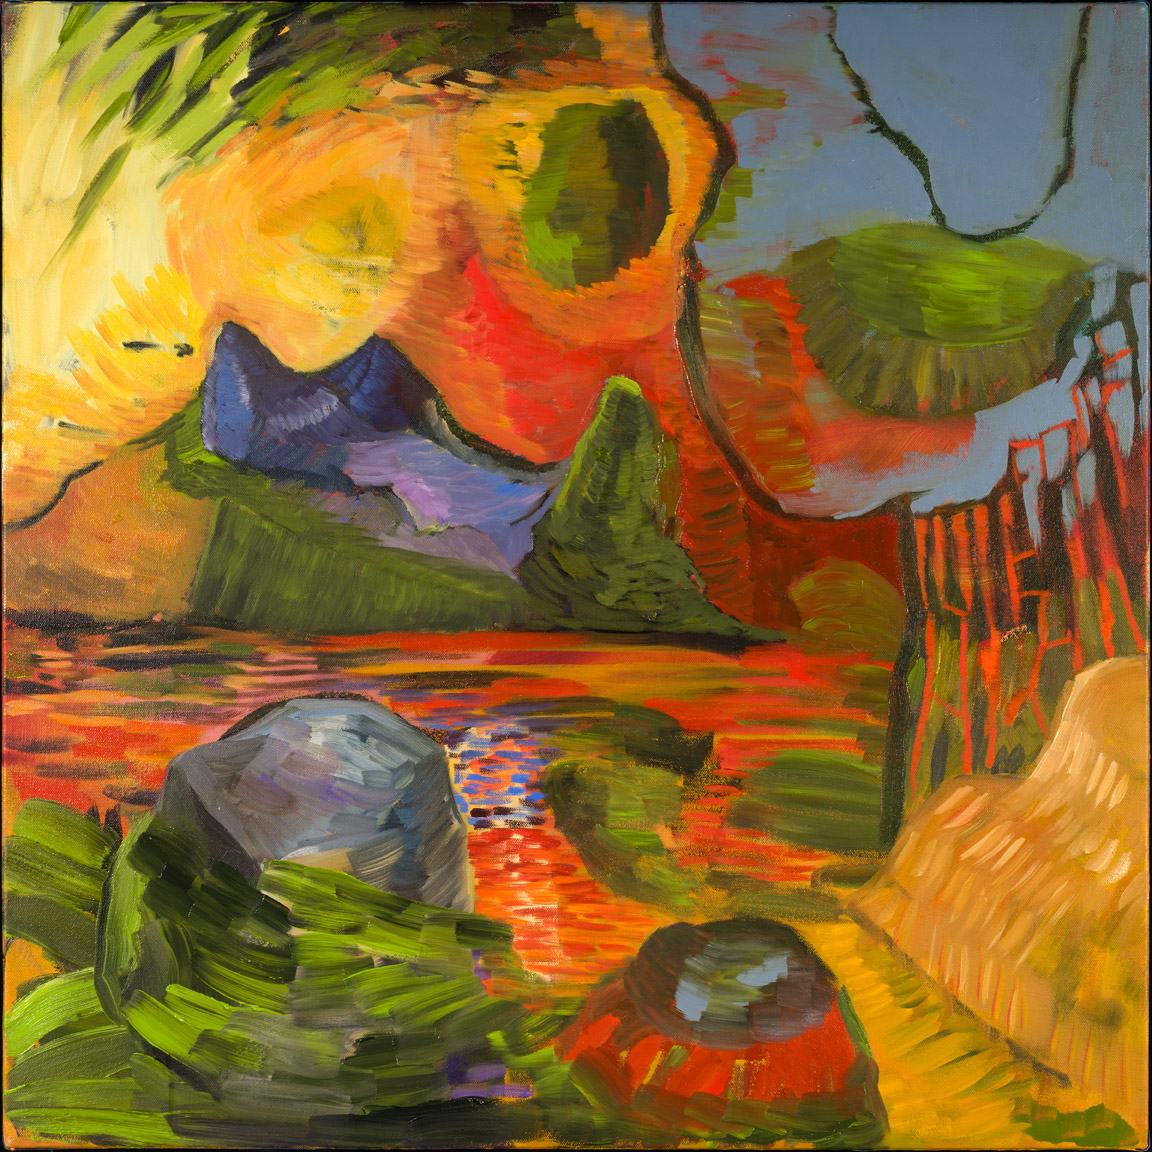 Island Fever - oil acrylic painting by Artist Irwin E Thompson